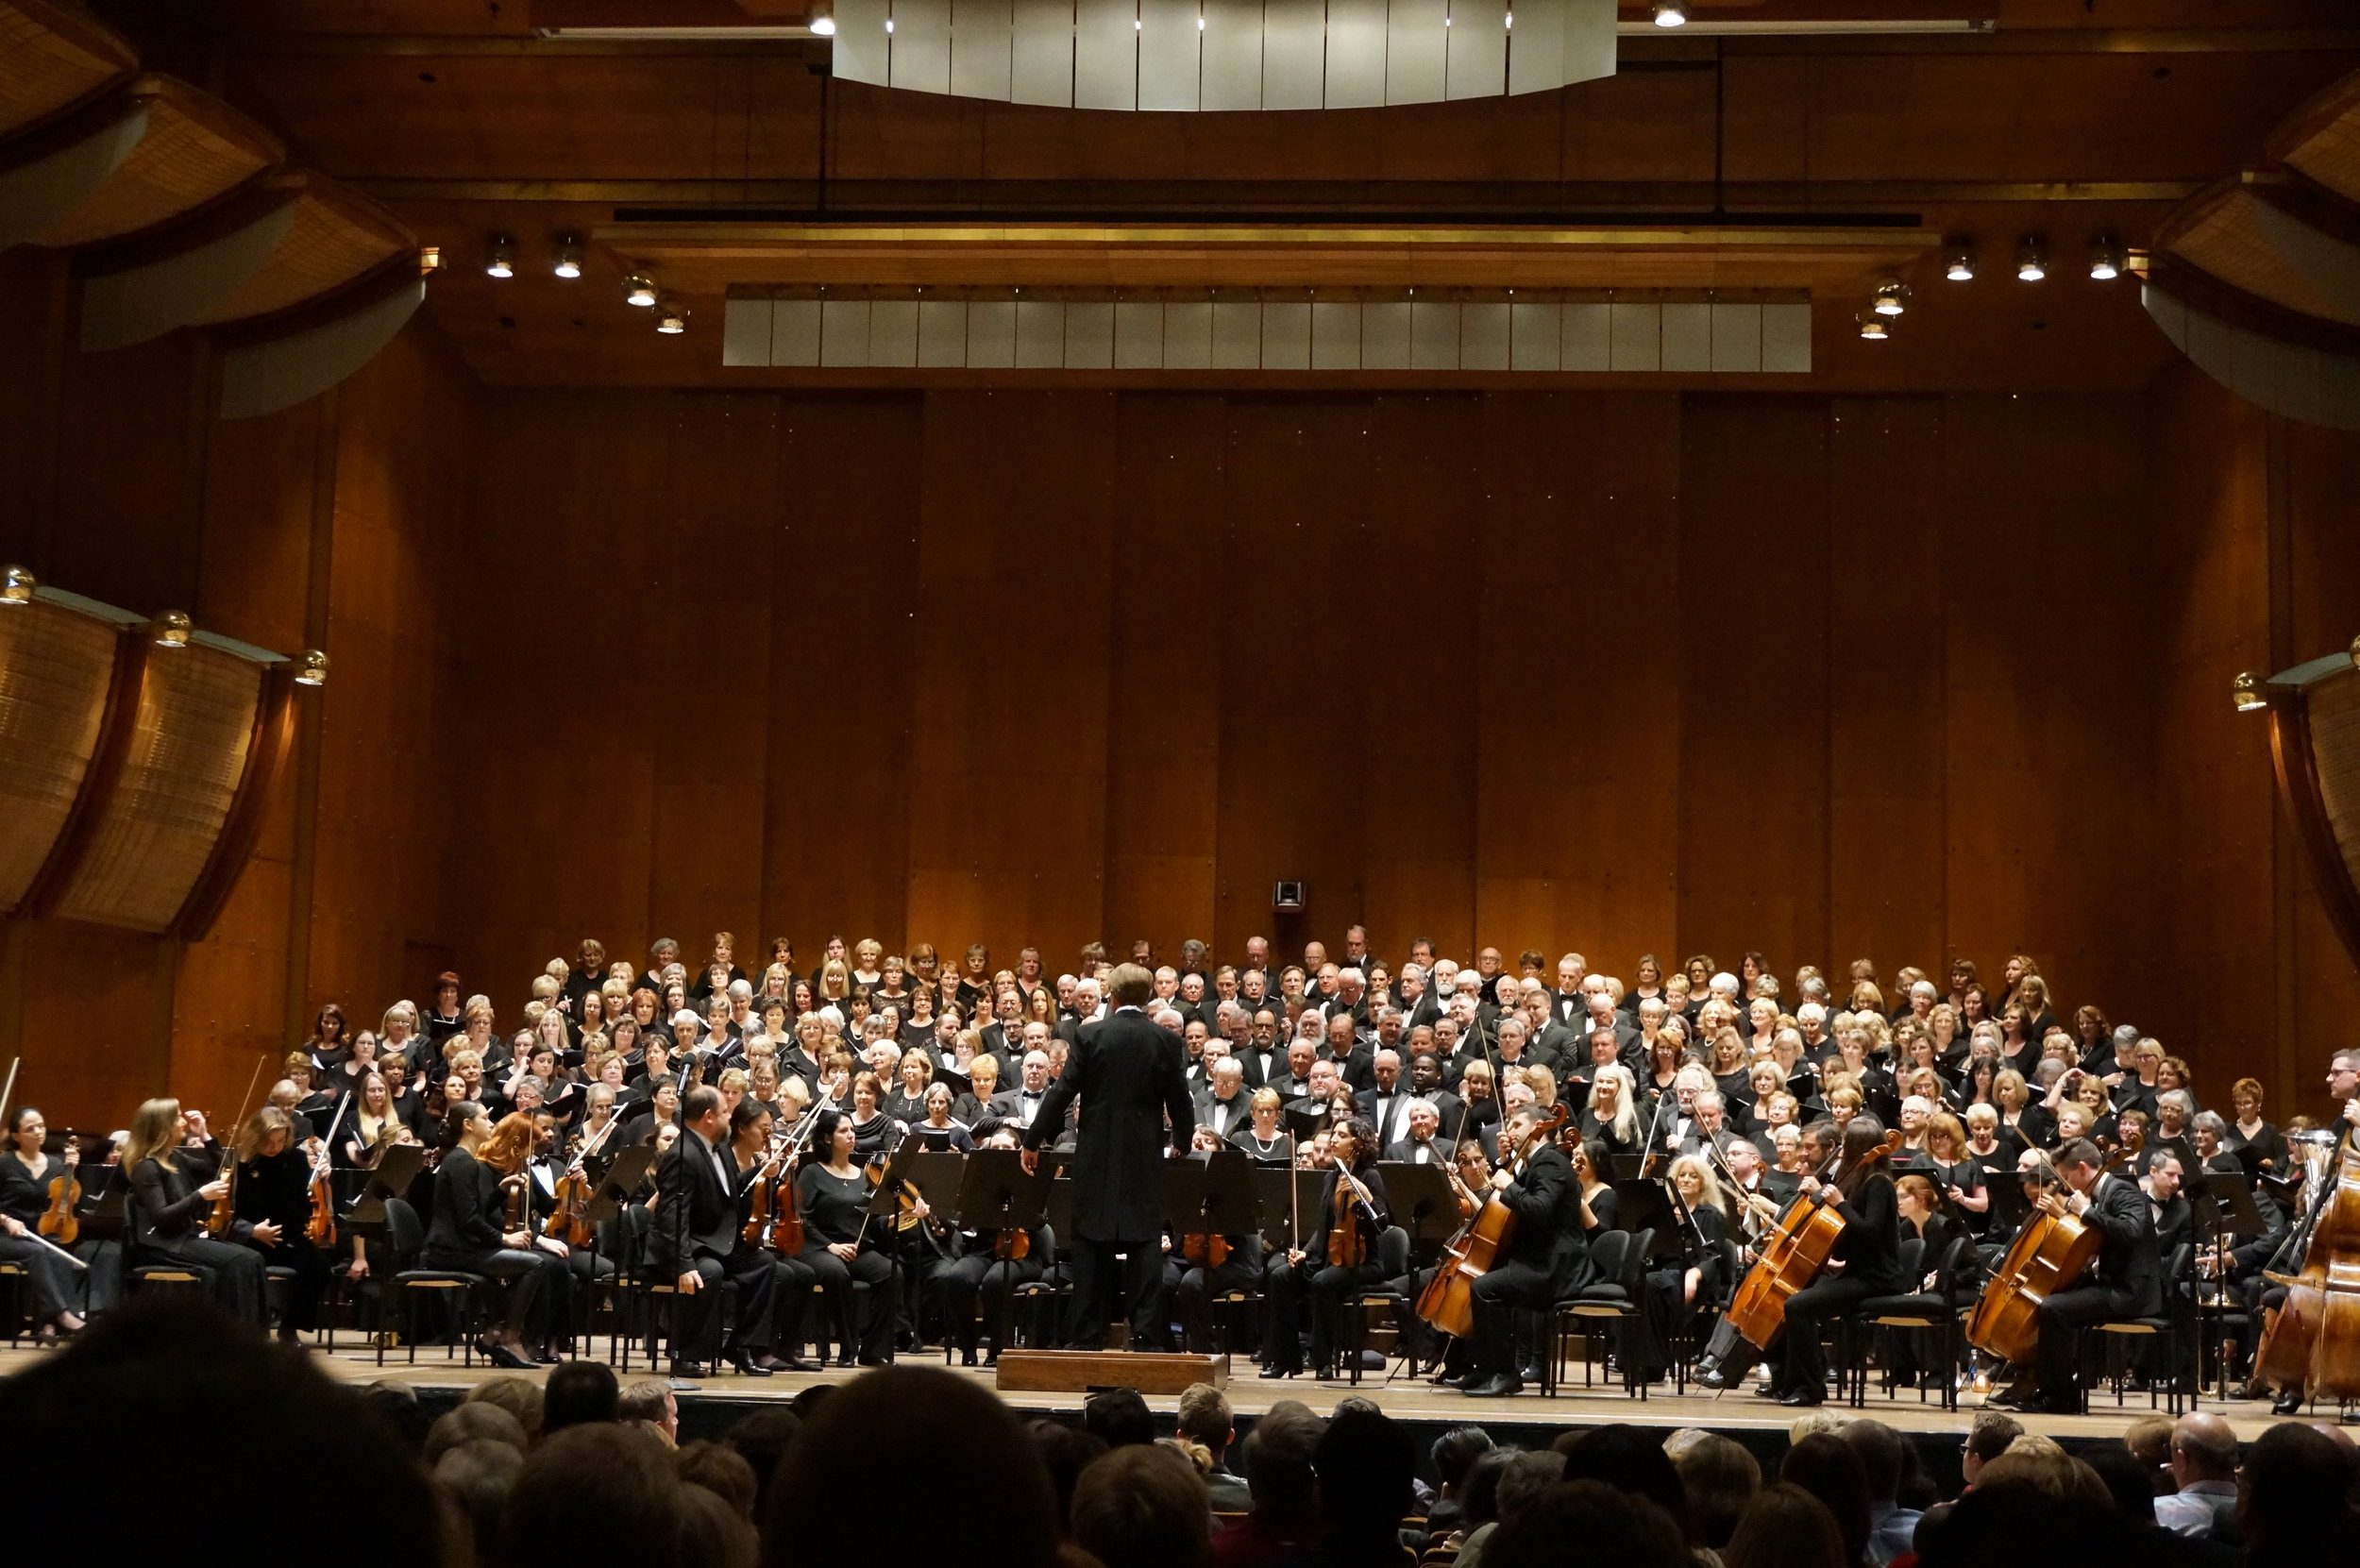 PSALM 23, Geffen Hall at Lincoln Center, 2017